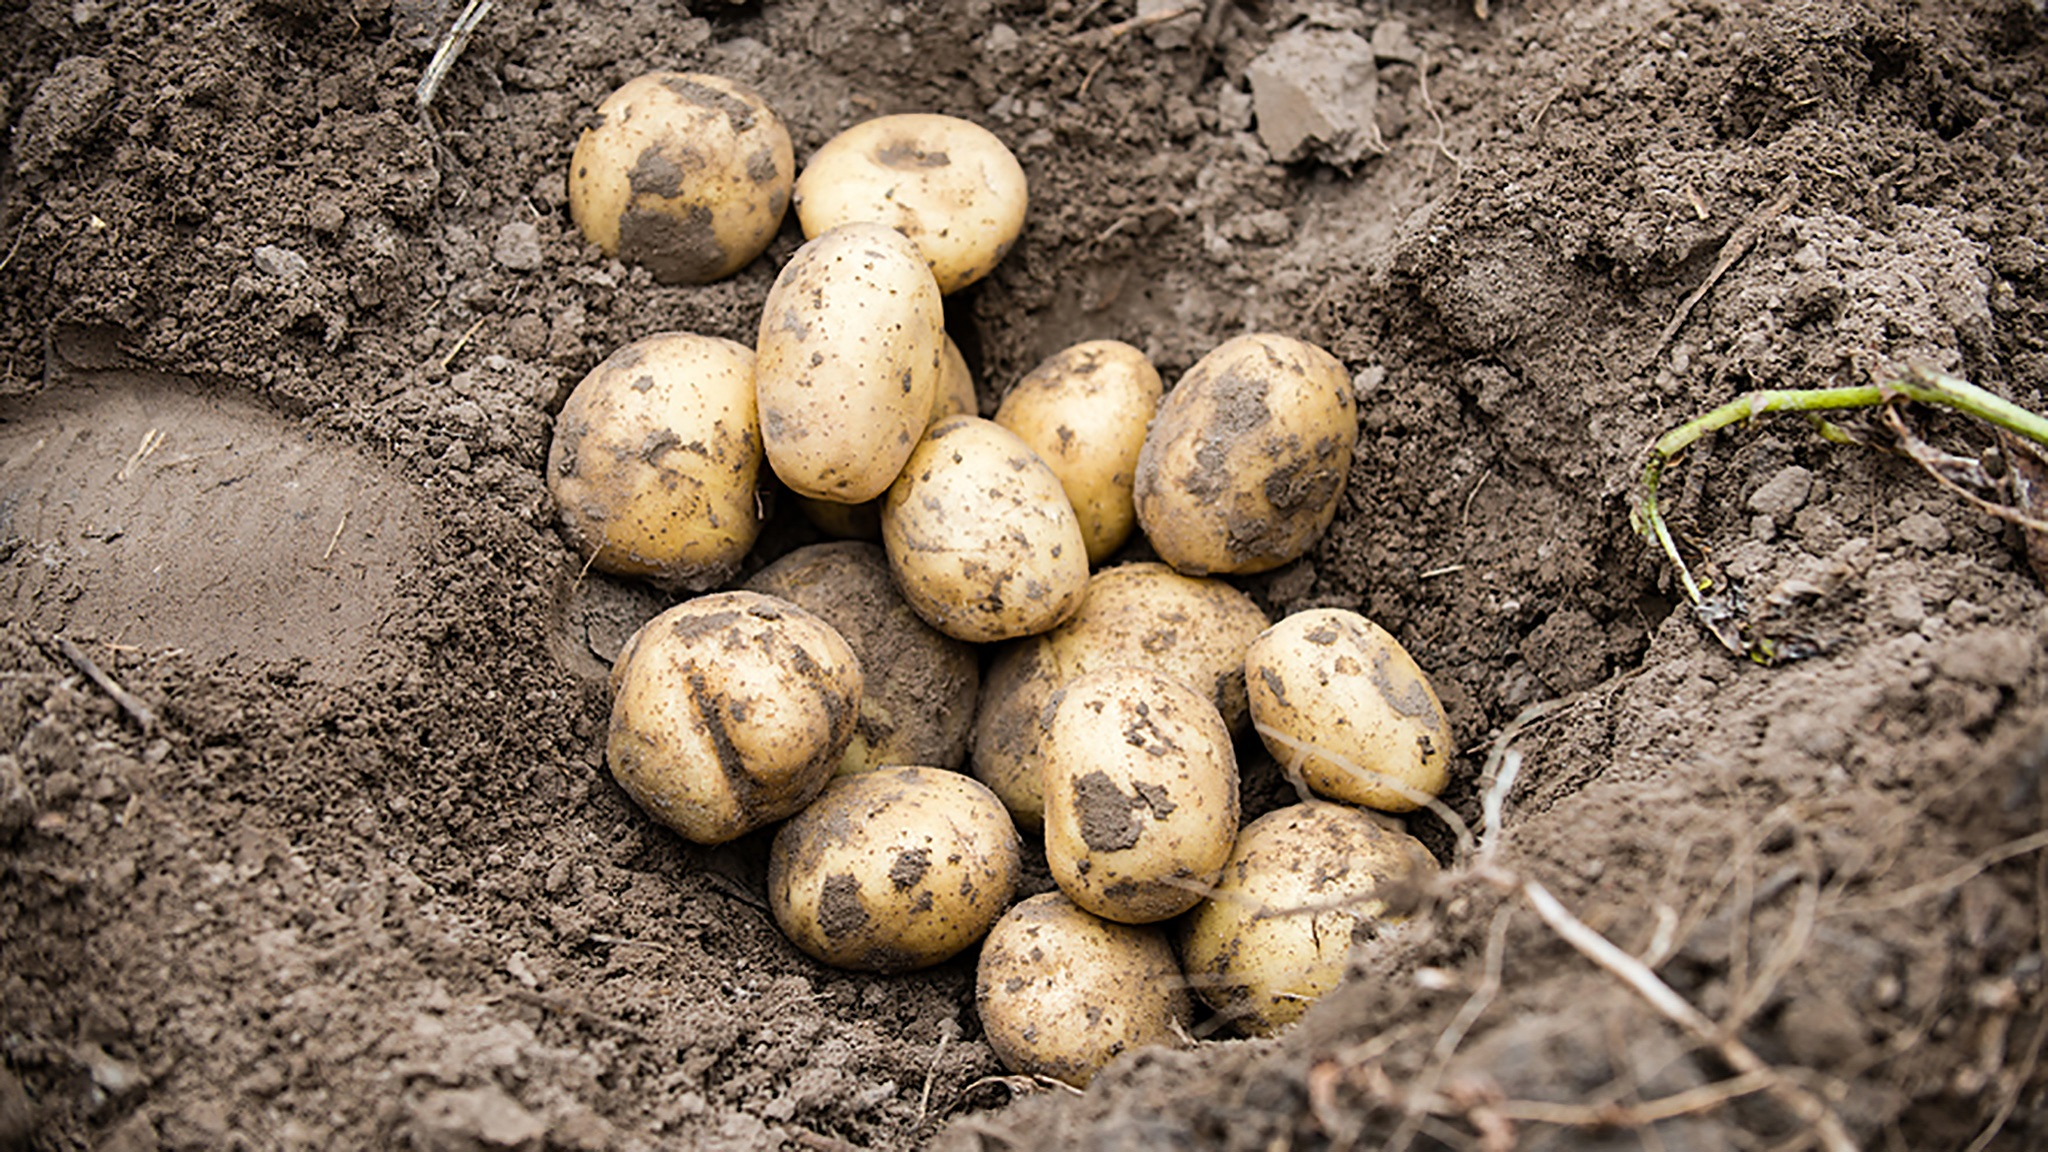 This agronomic image shows potatoes